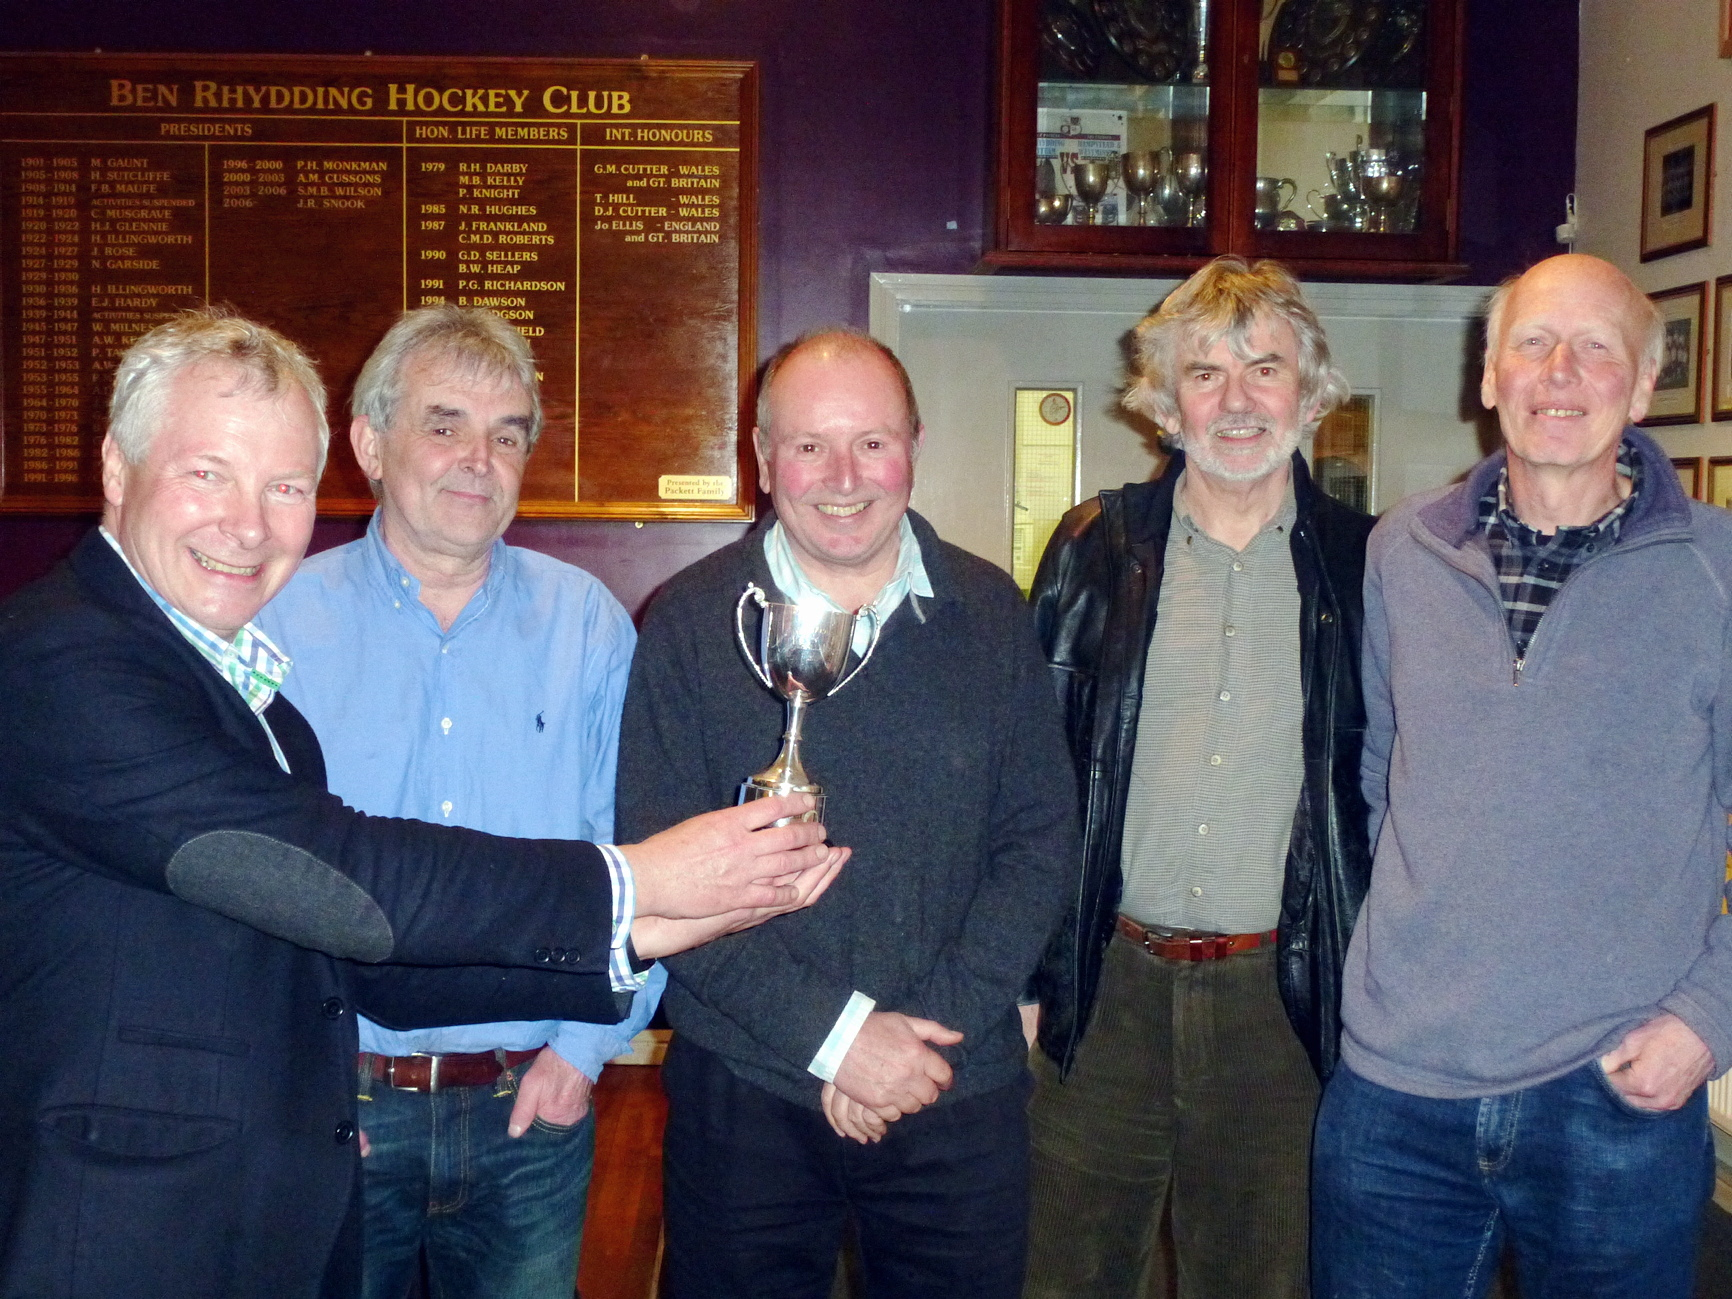 Ian Briggs of the Rotary Club of Ilkley (far left) presents the Andrew Hartley Cup to the winners of the business quiz, a team from Allison & MacRae Architects of Burley-in-Wharfedale, from left Steve Nicholson, Mi